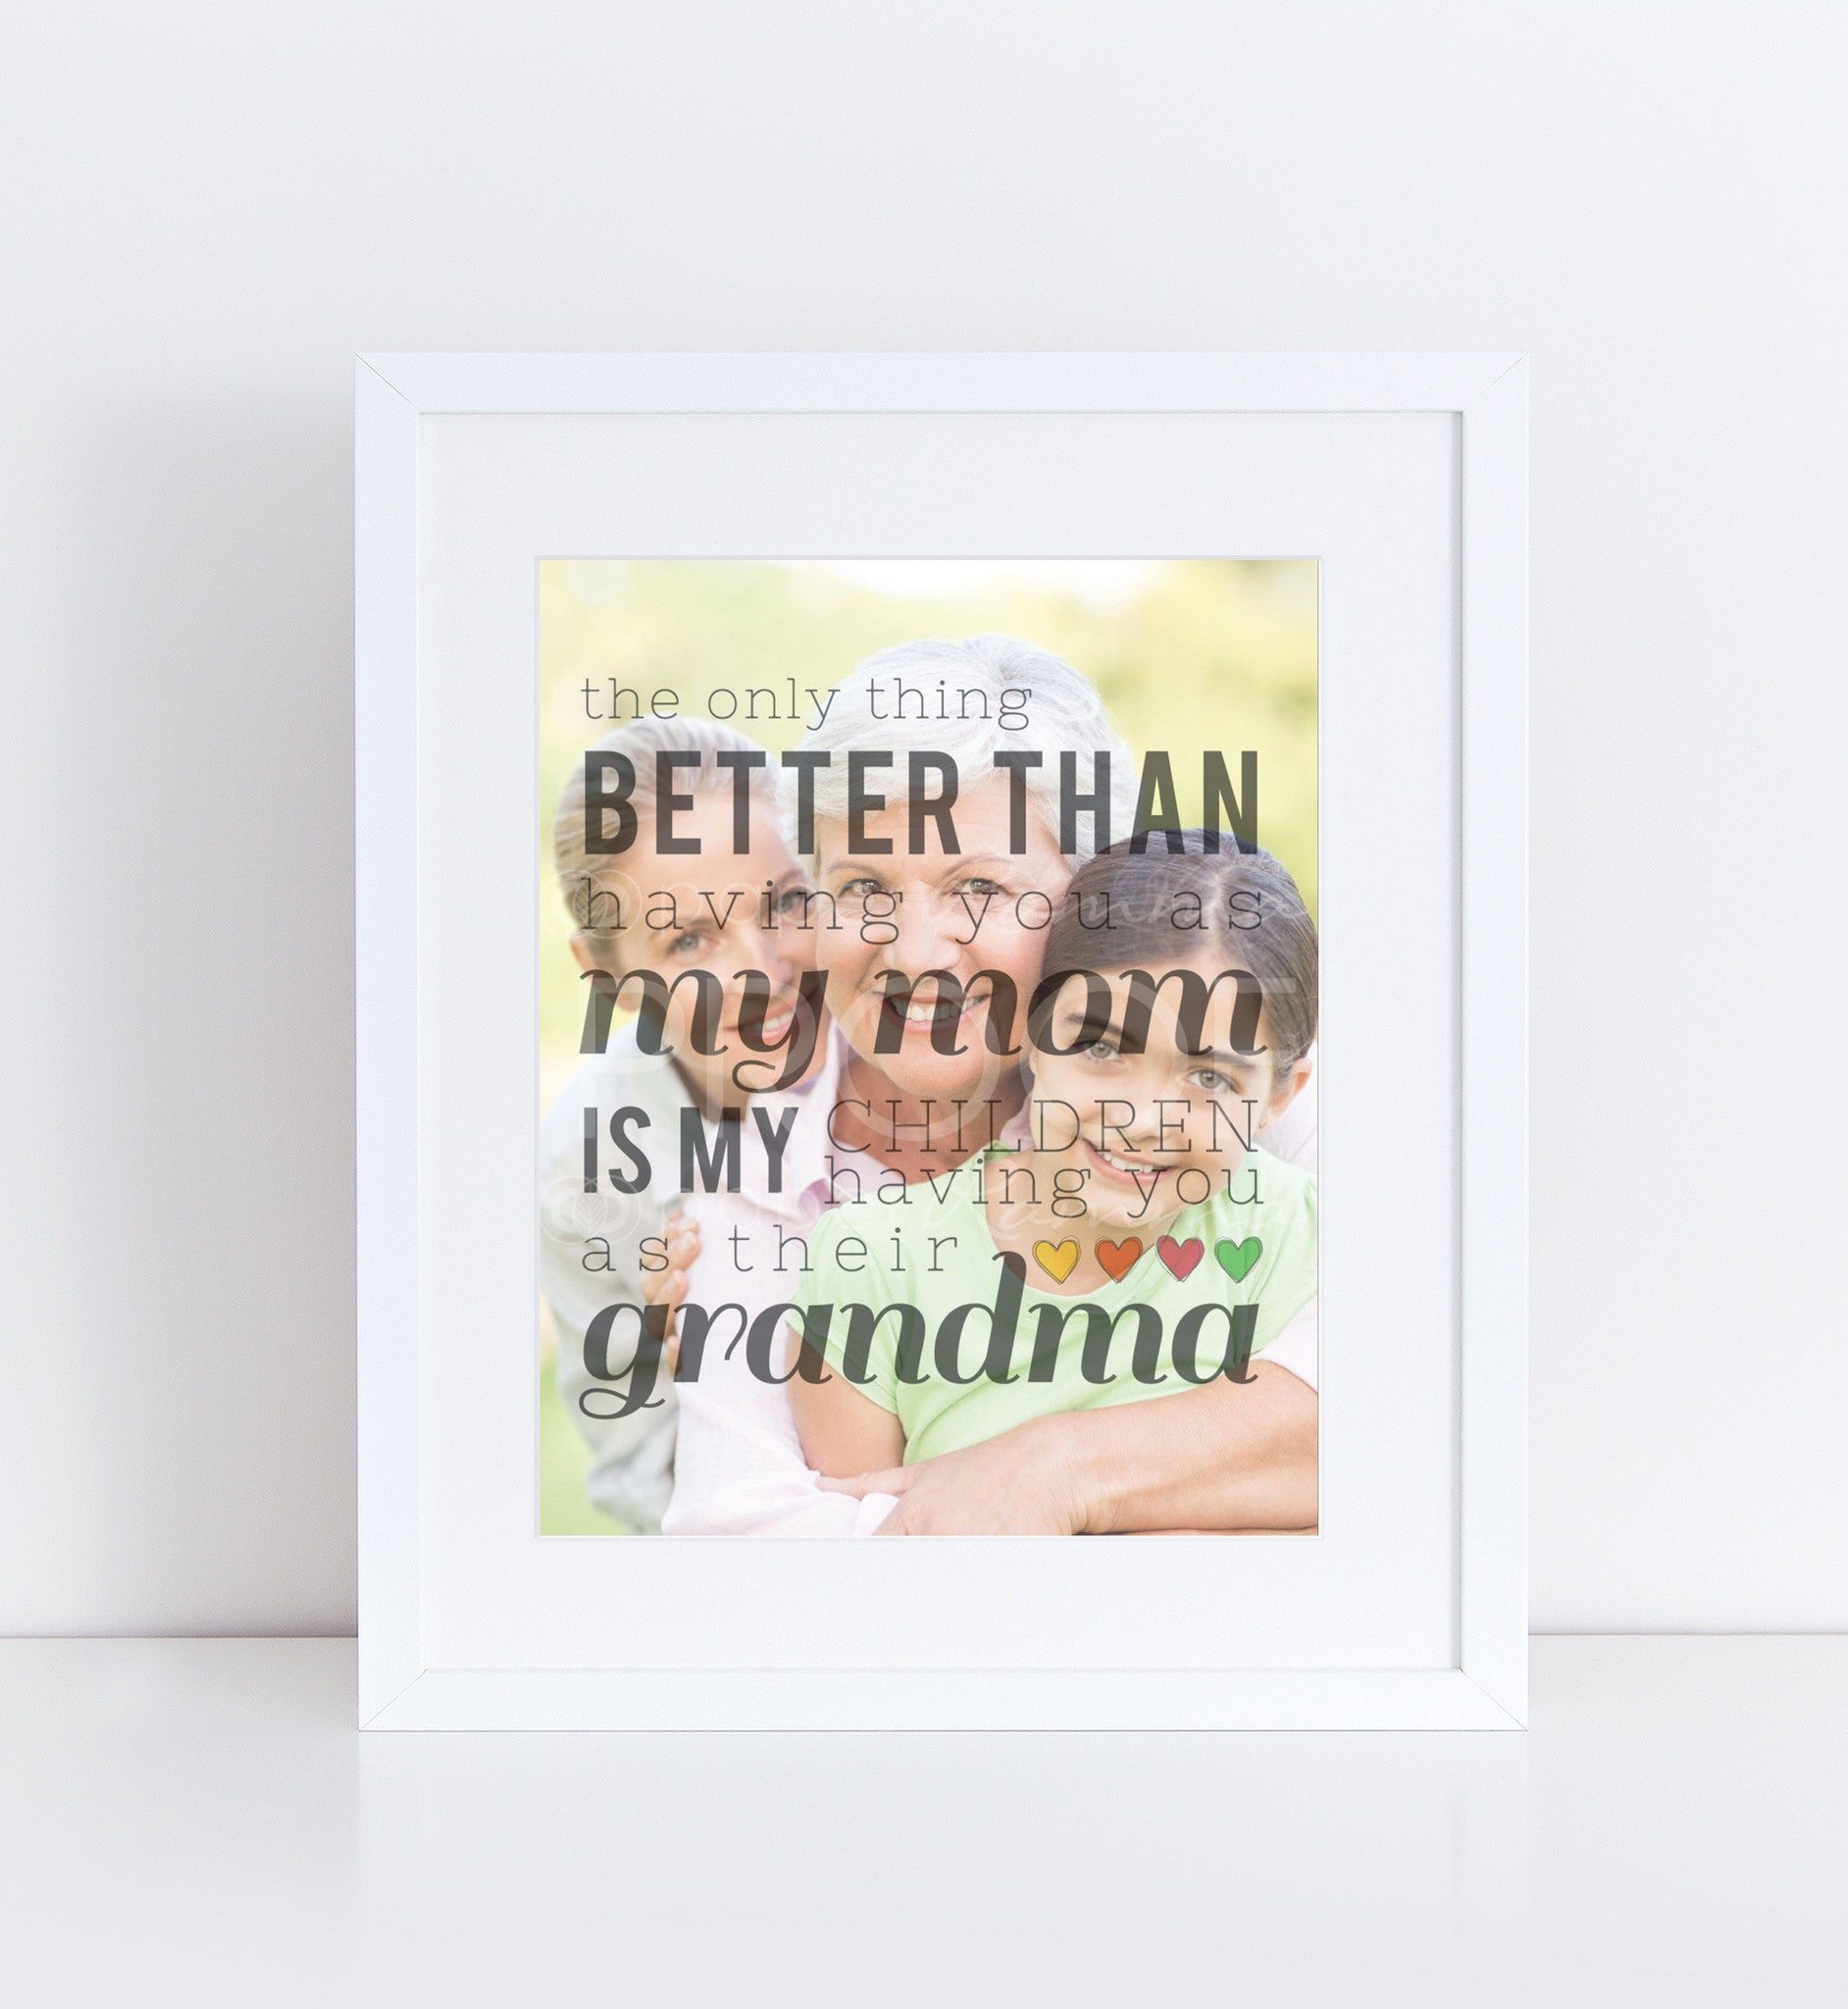 Grandma Photo Quote, Personalized Photo Gifts